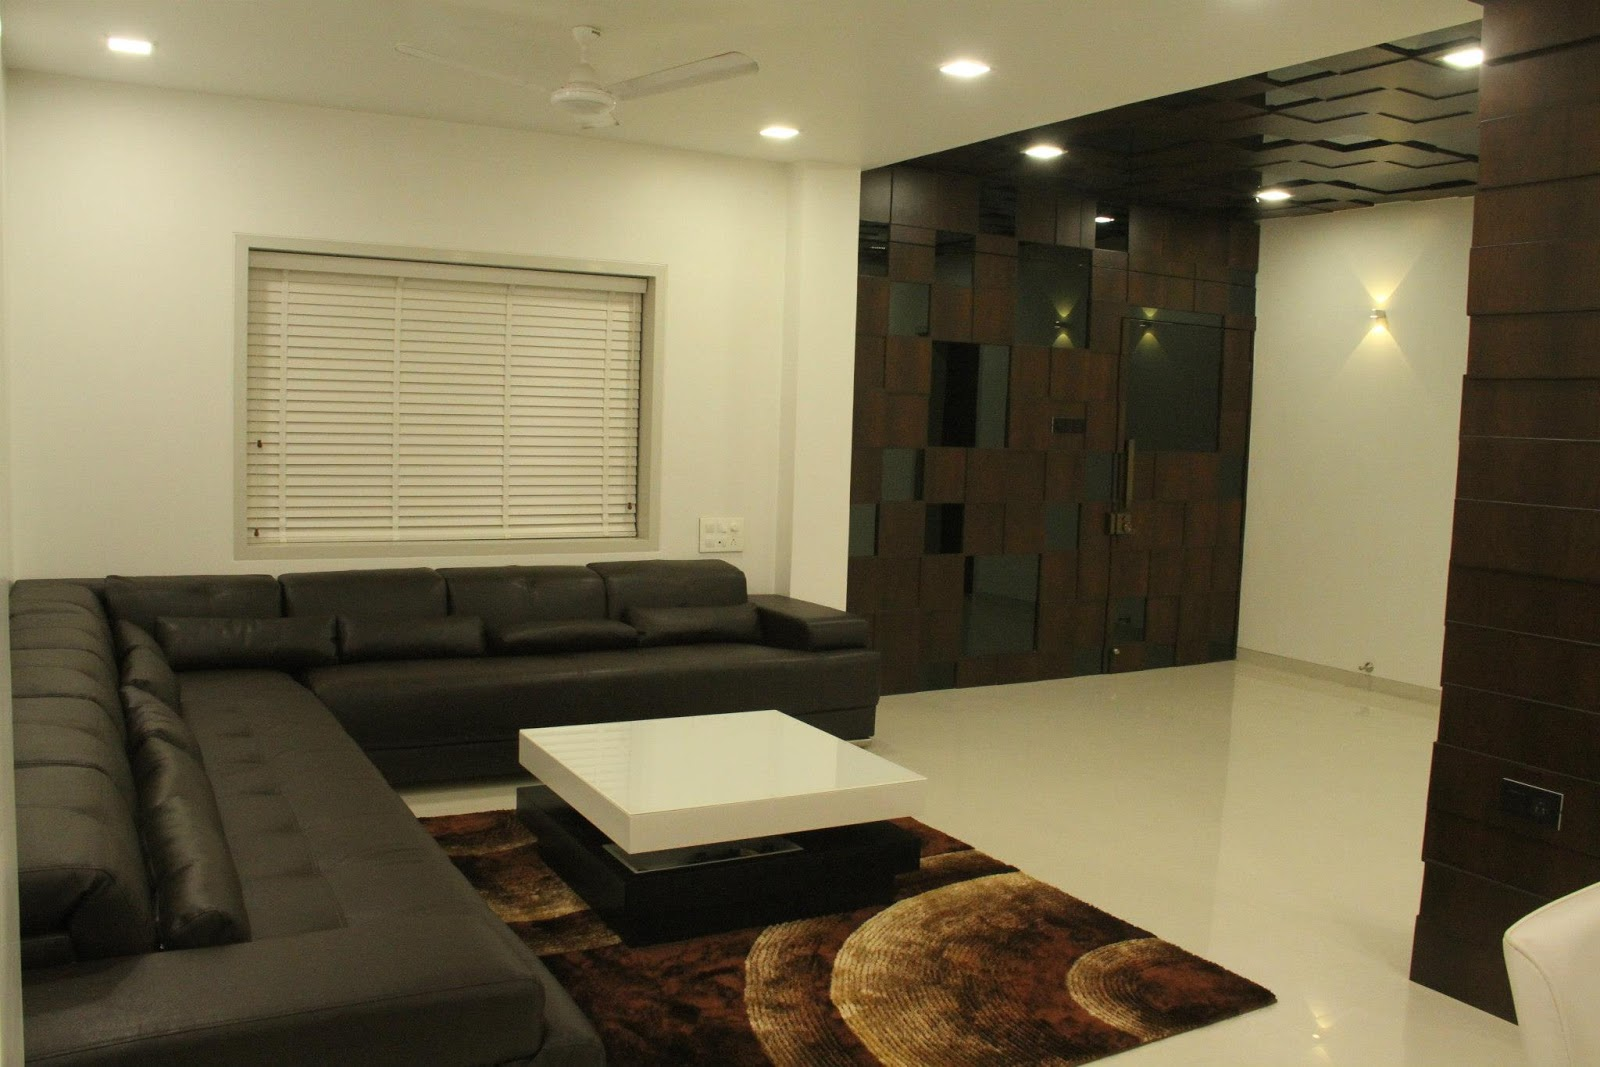 Modern Flat Bed Modern Flat Interior Decoration The Details In This 40